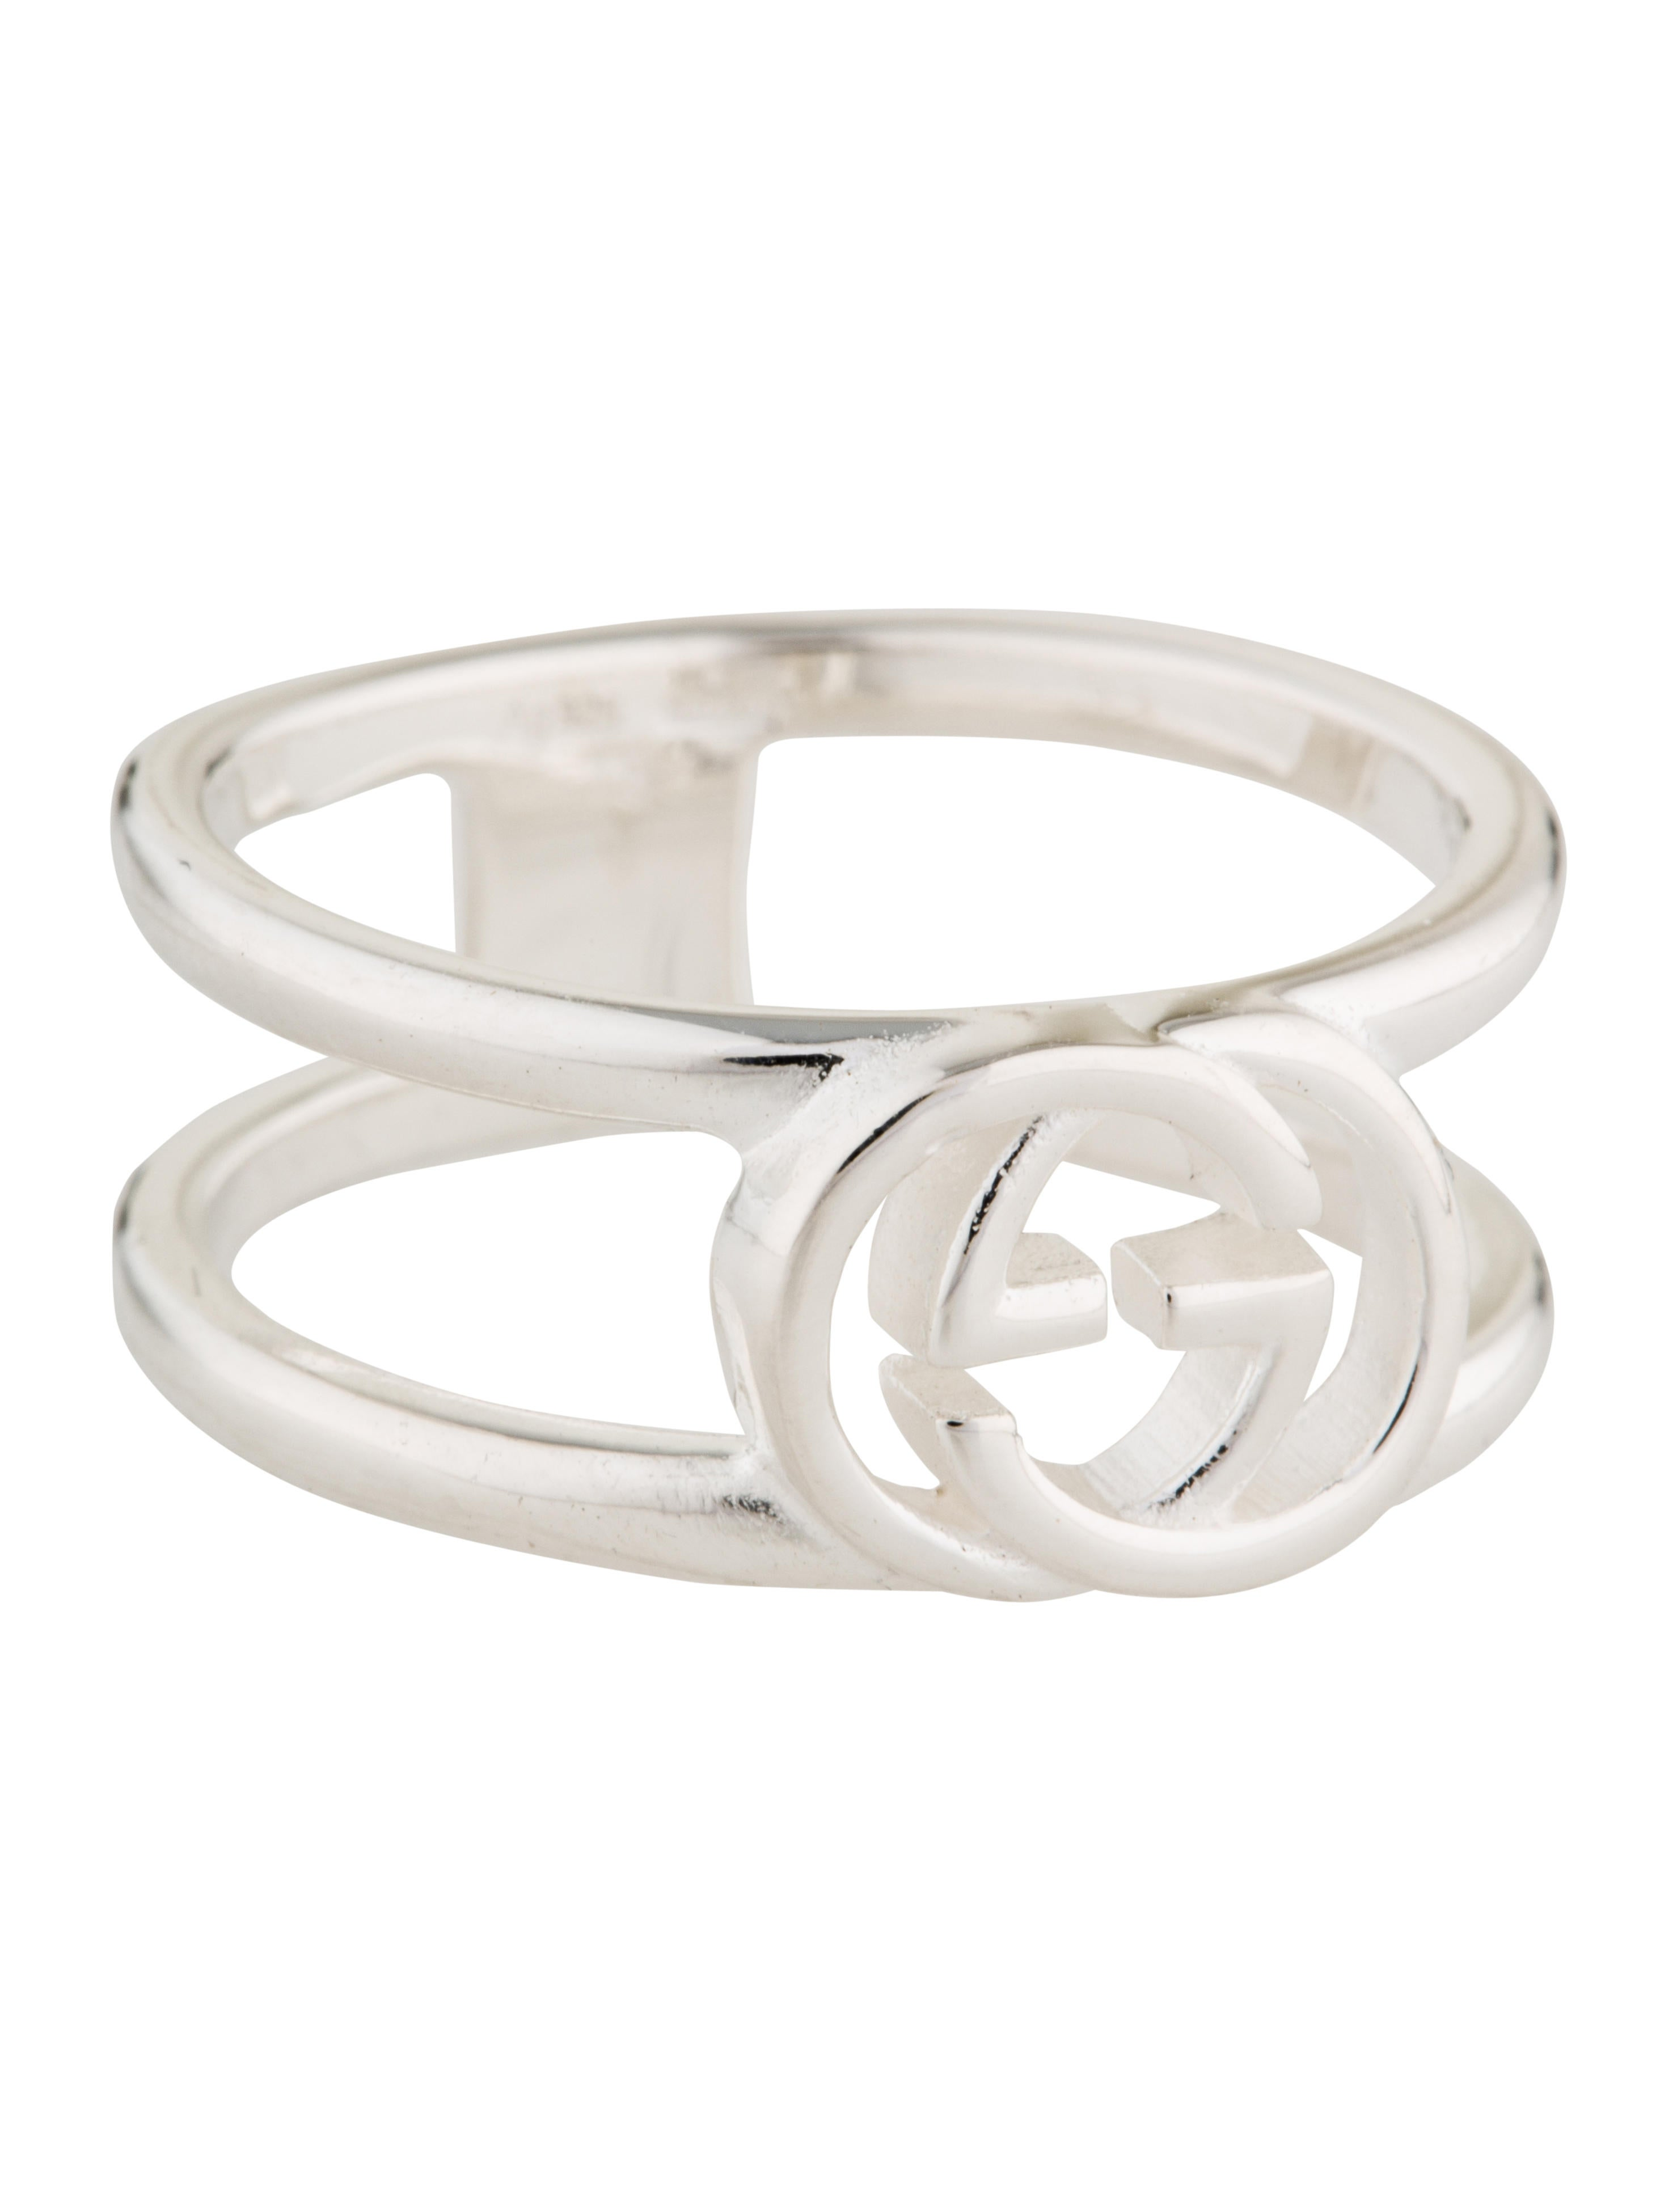 f6486e48f Gucci Wide Ring with Interlocking G Motif - Rings - GUC147719 | The ...